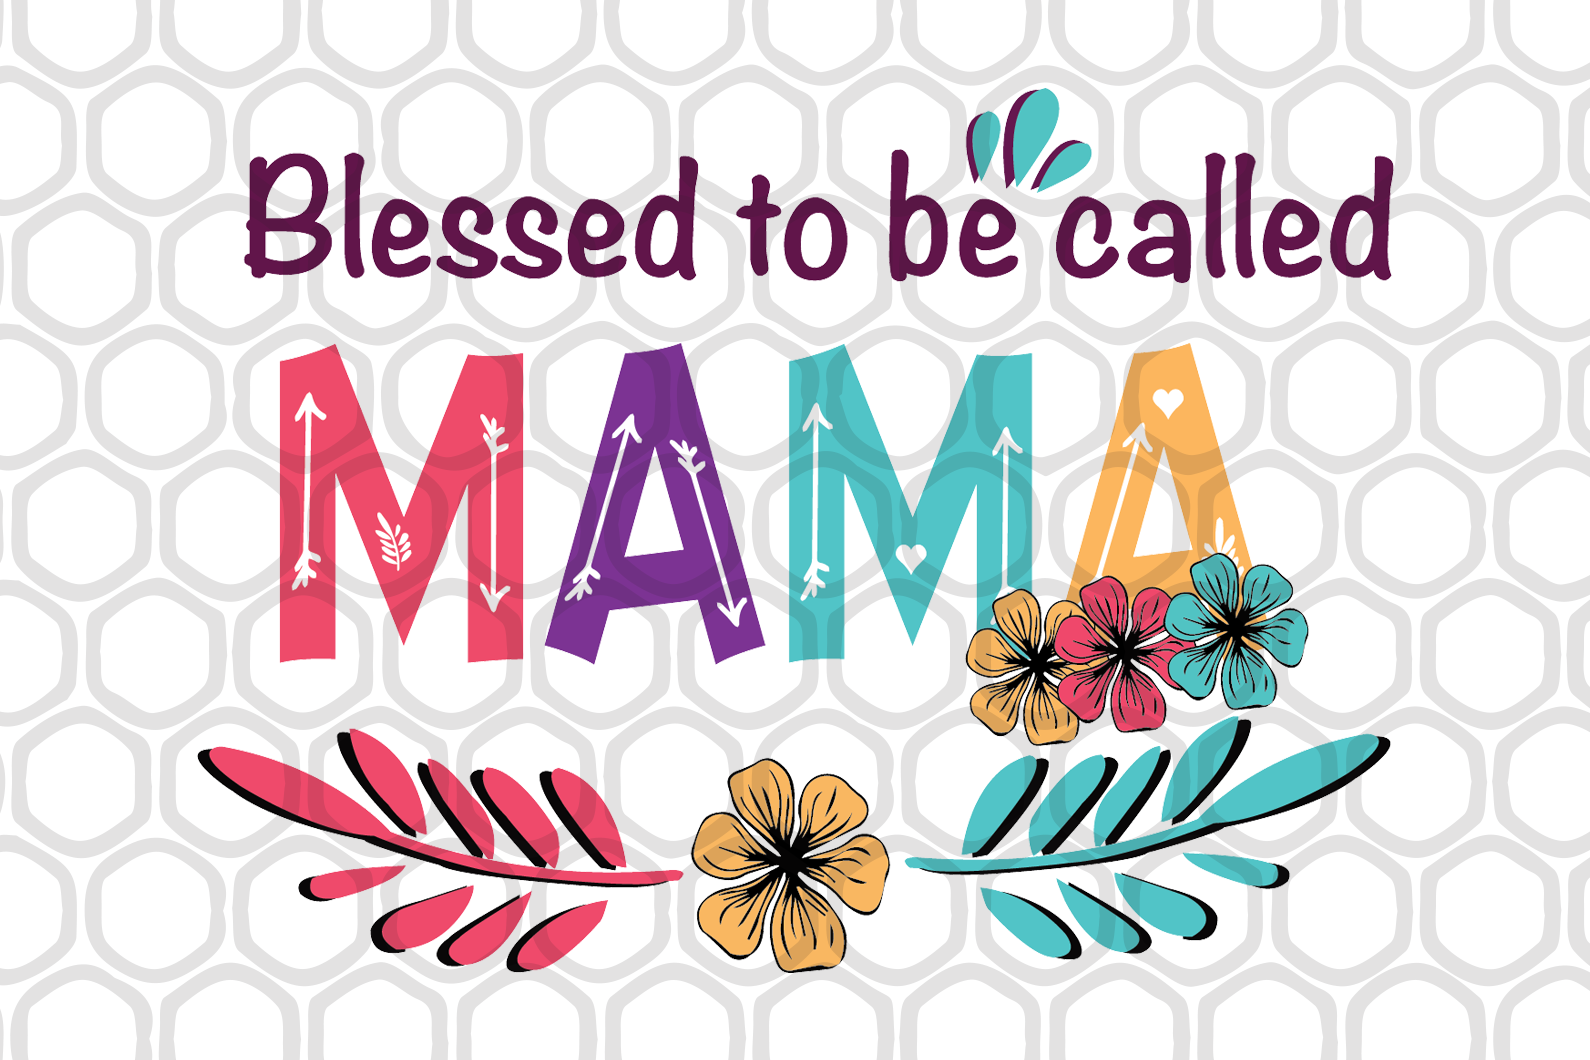 Blessed to be called mama, mama svg, mama gift, mama shirt, gift for mama, family svg, family shirt,family gift,trending svg, Files For Silhouette, Files For Cricut, SVG, DXF, EPS, PNG, Instant Download